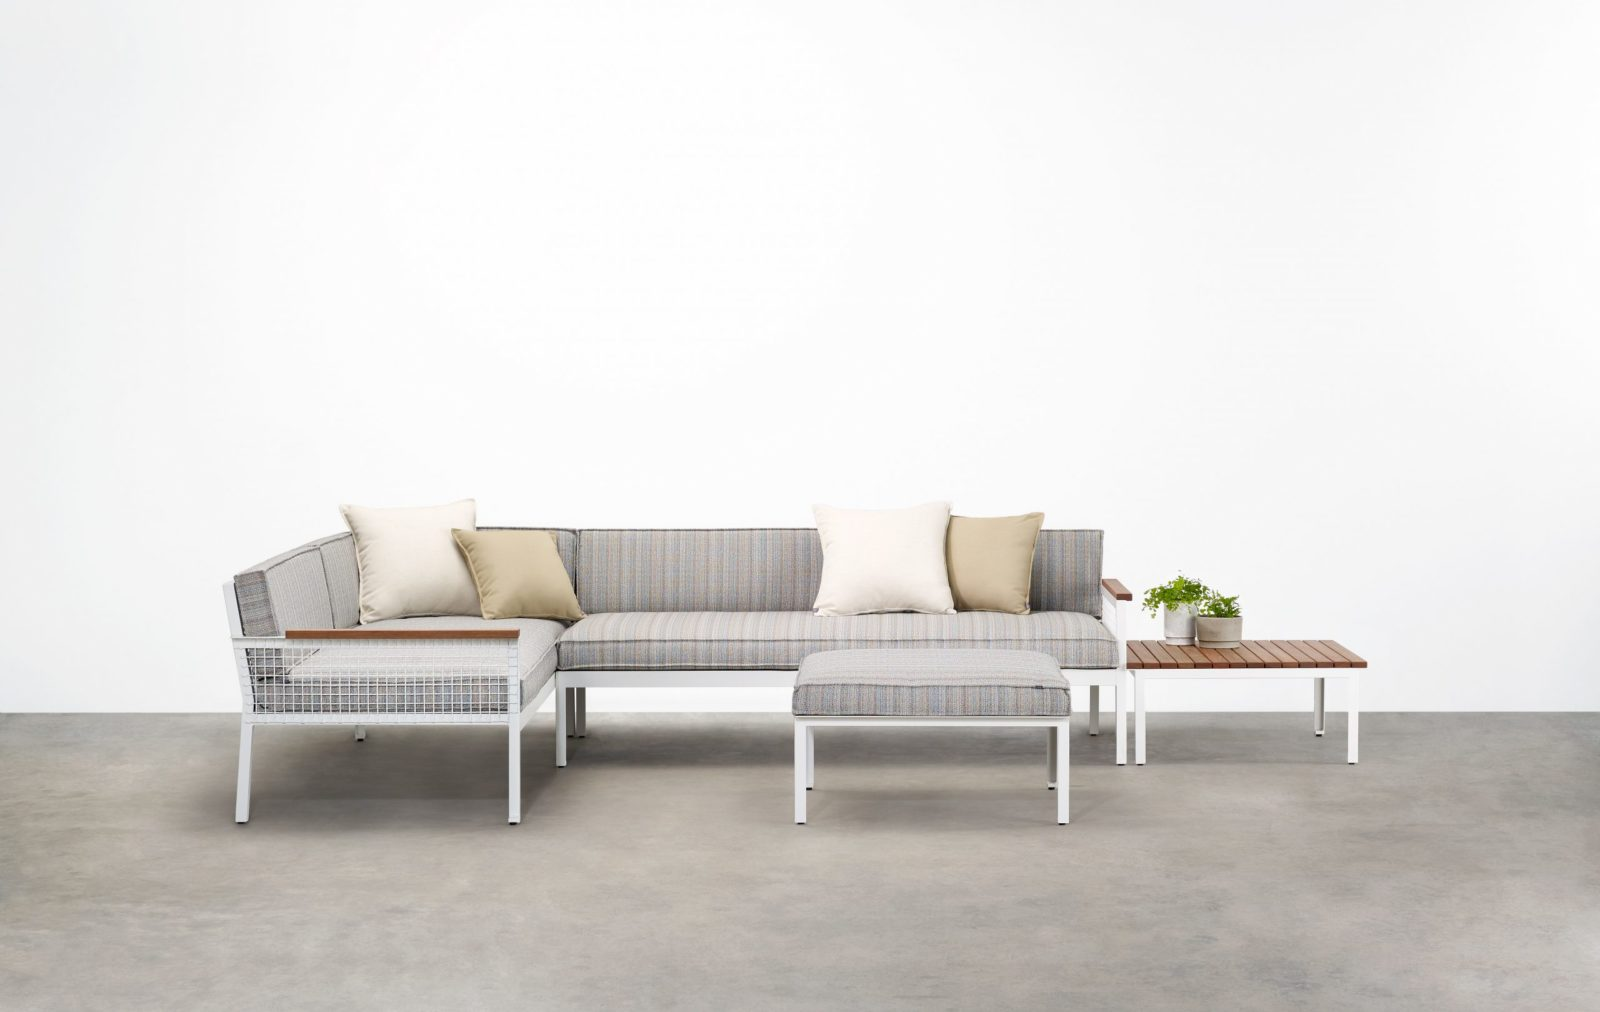 Breeze Modular is a premium outdoor modular lounge characterised by a crisp aesthetic shaped by the intersection of clean horizontal lines.